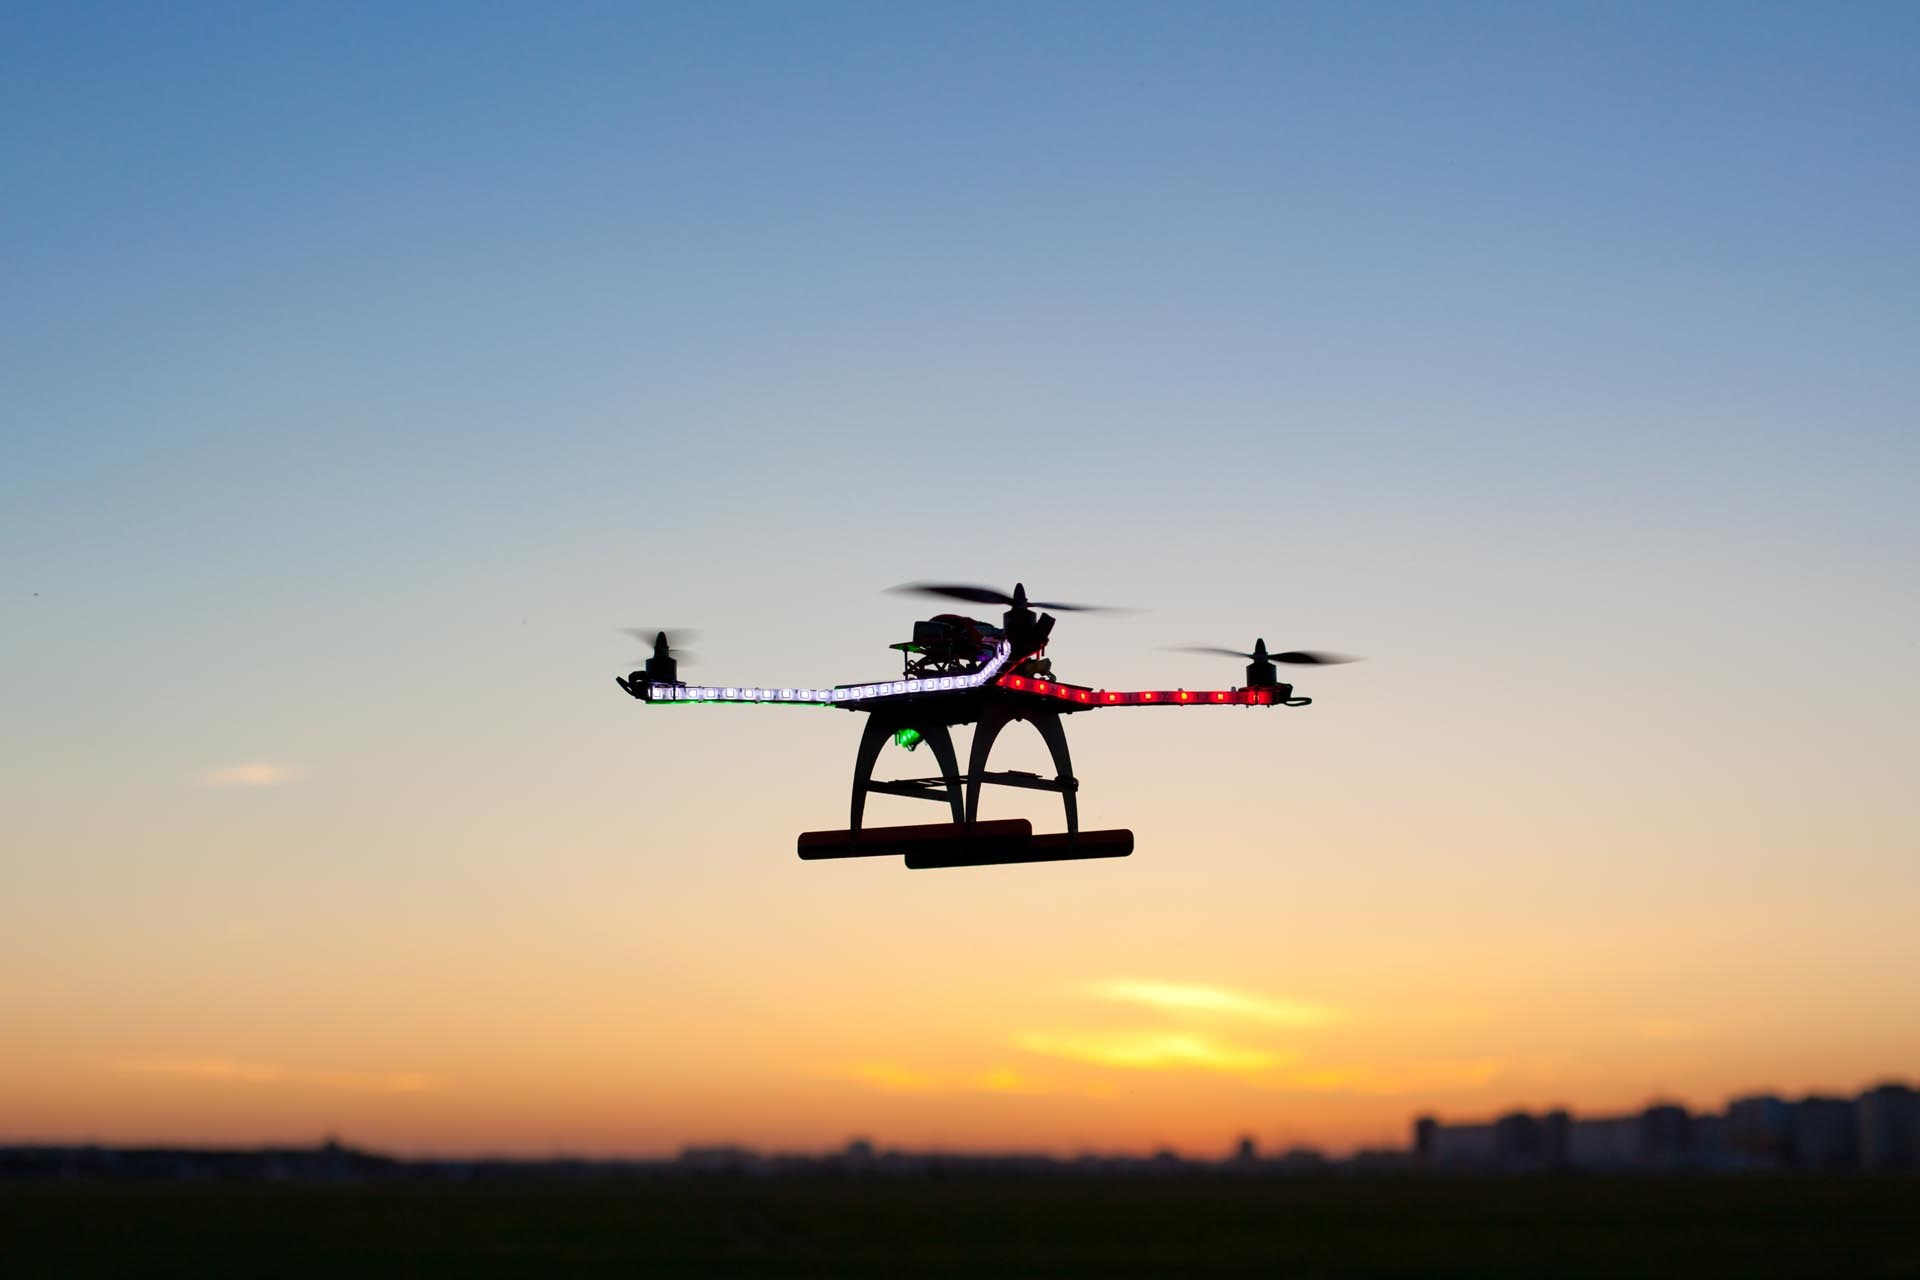 It's about time Kenya adopted commercial drones…